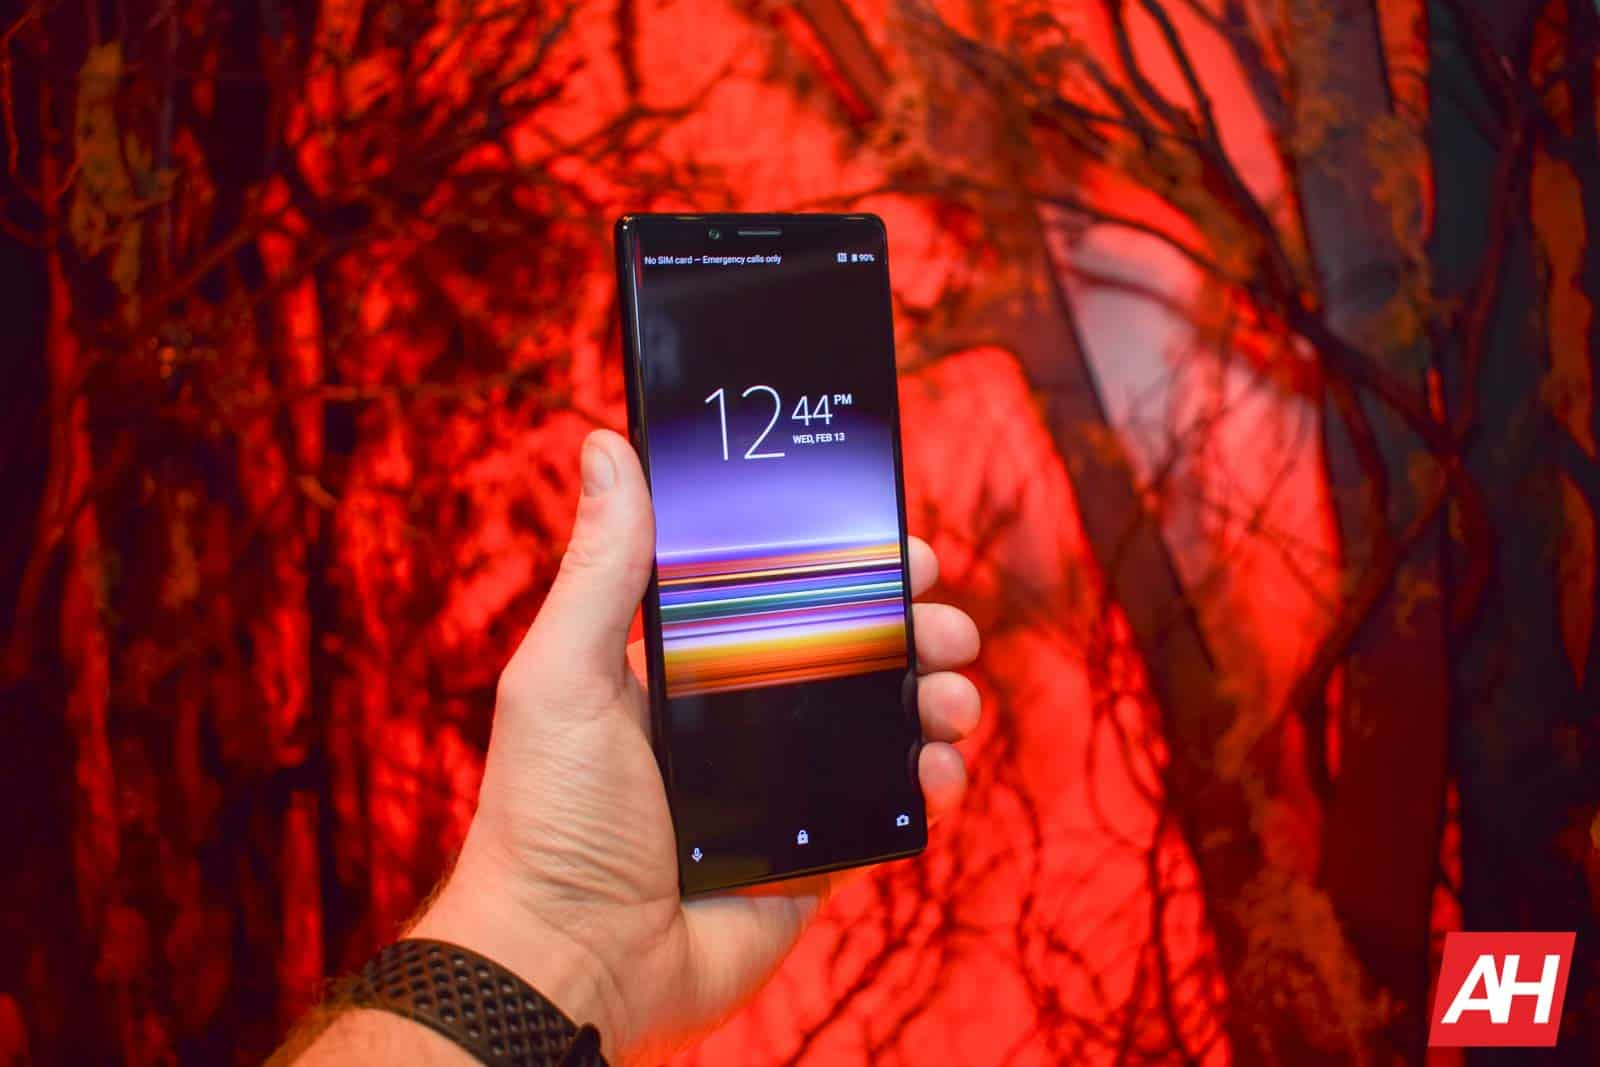 Sony Xperia 1 AM AH 13